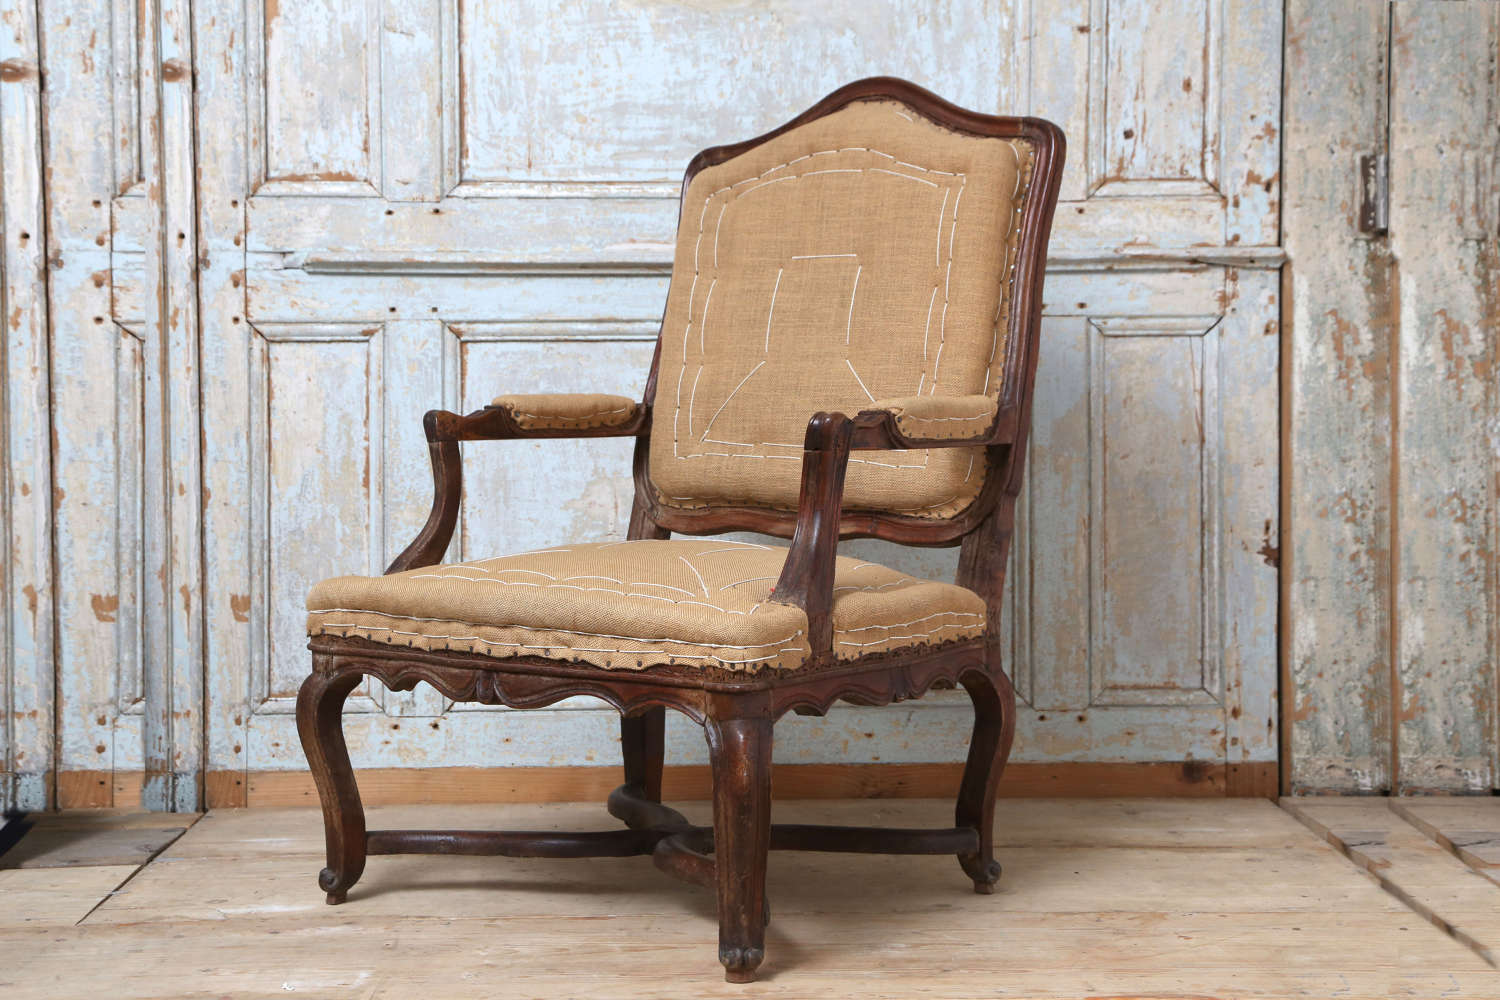 French 18th century fruitwood Regence armchair